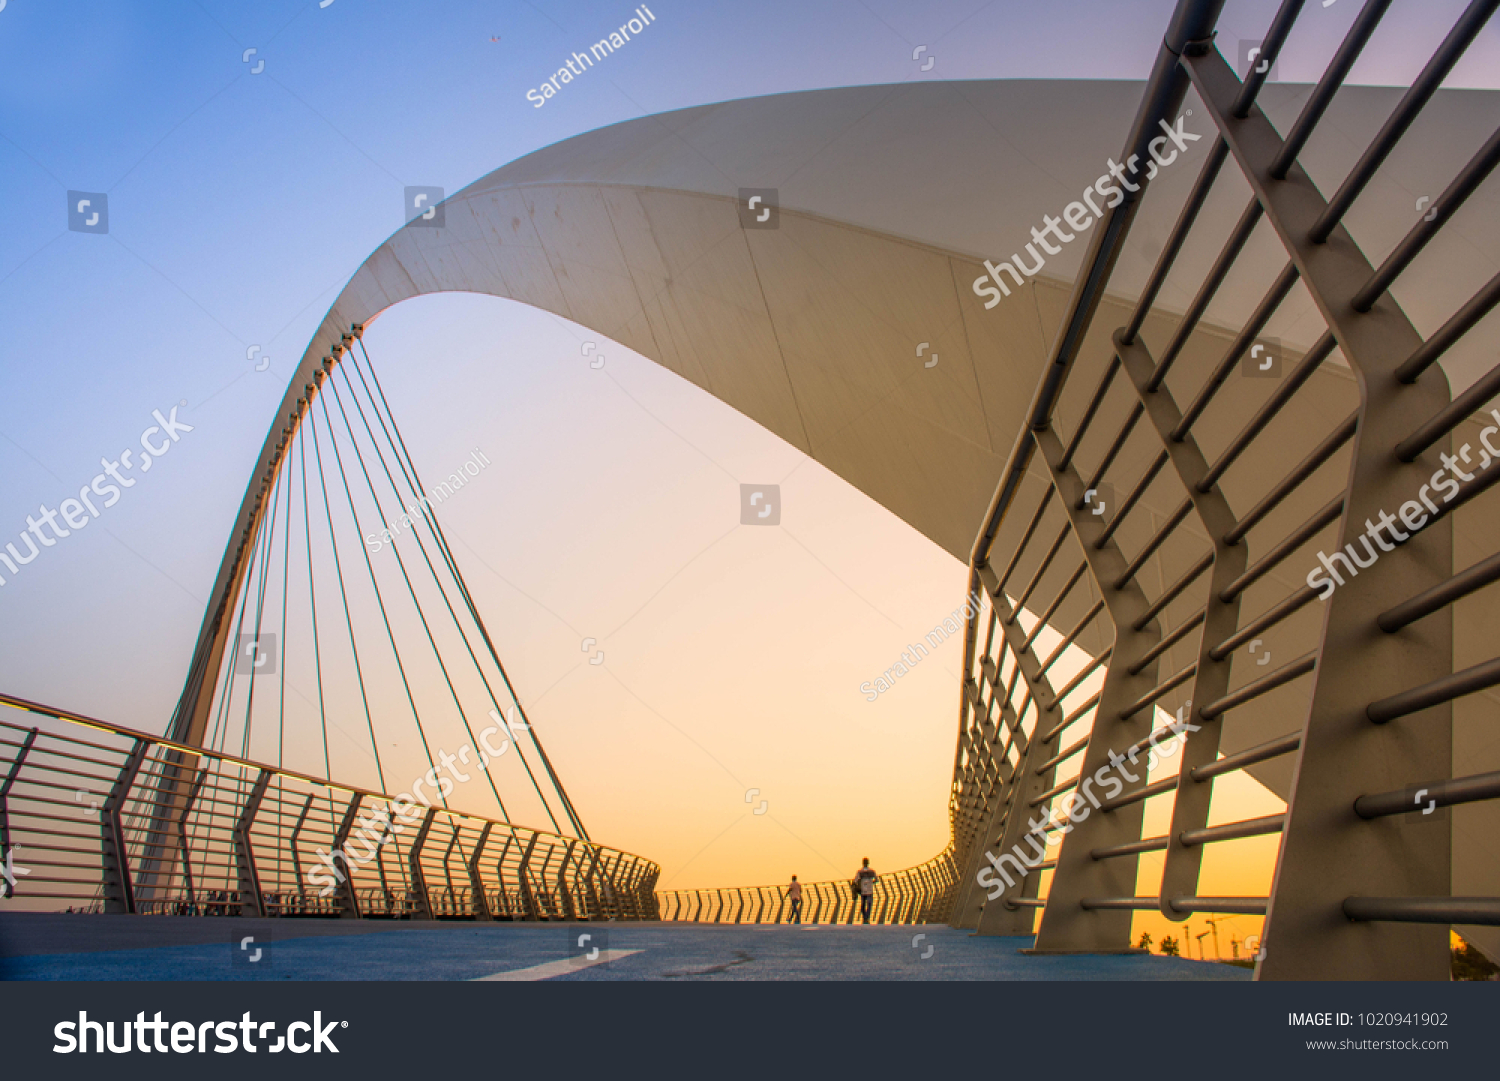 Evening shot of Dubai FamousWater Canal Bridge New Attraction of Dubai City, place to visit in UAE, tourist place in Dubai, travel destination, modern architecture beautiful sunset at Tolerance Bridge #1020941902